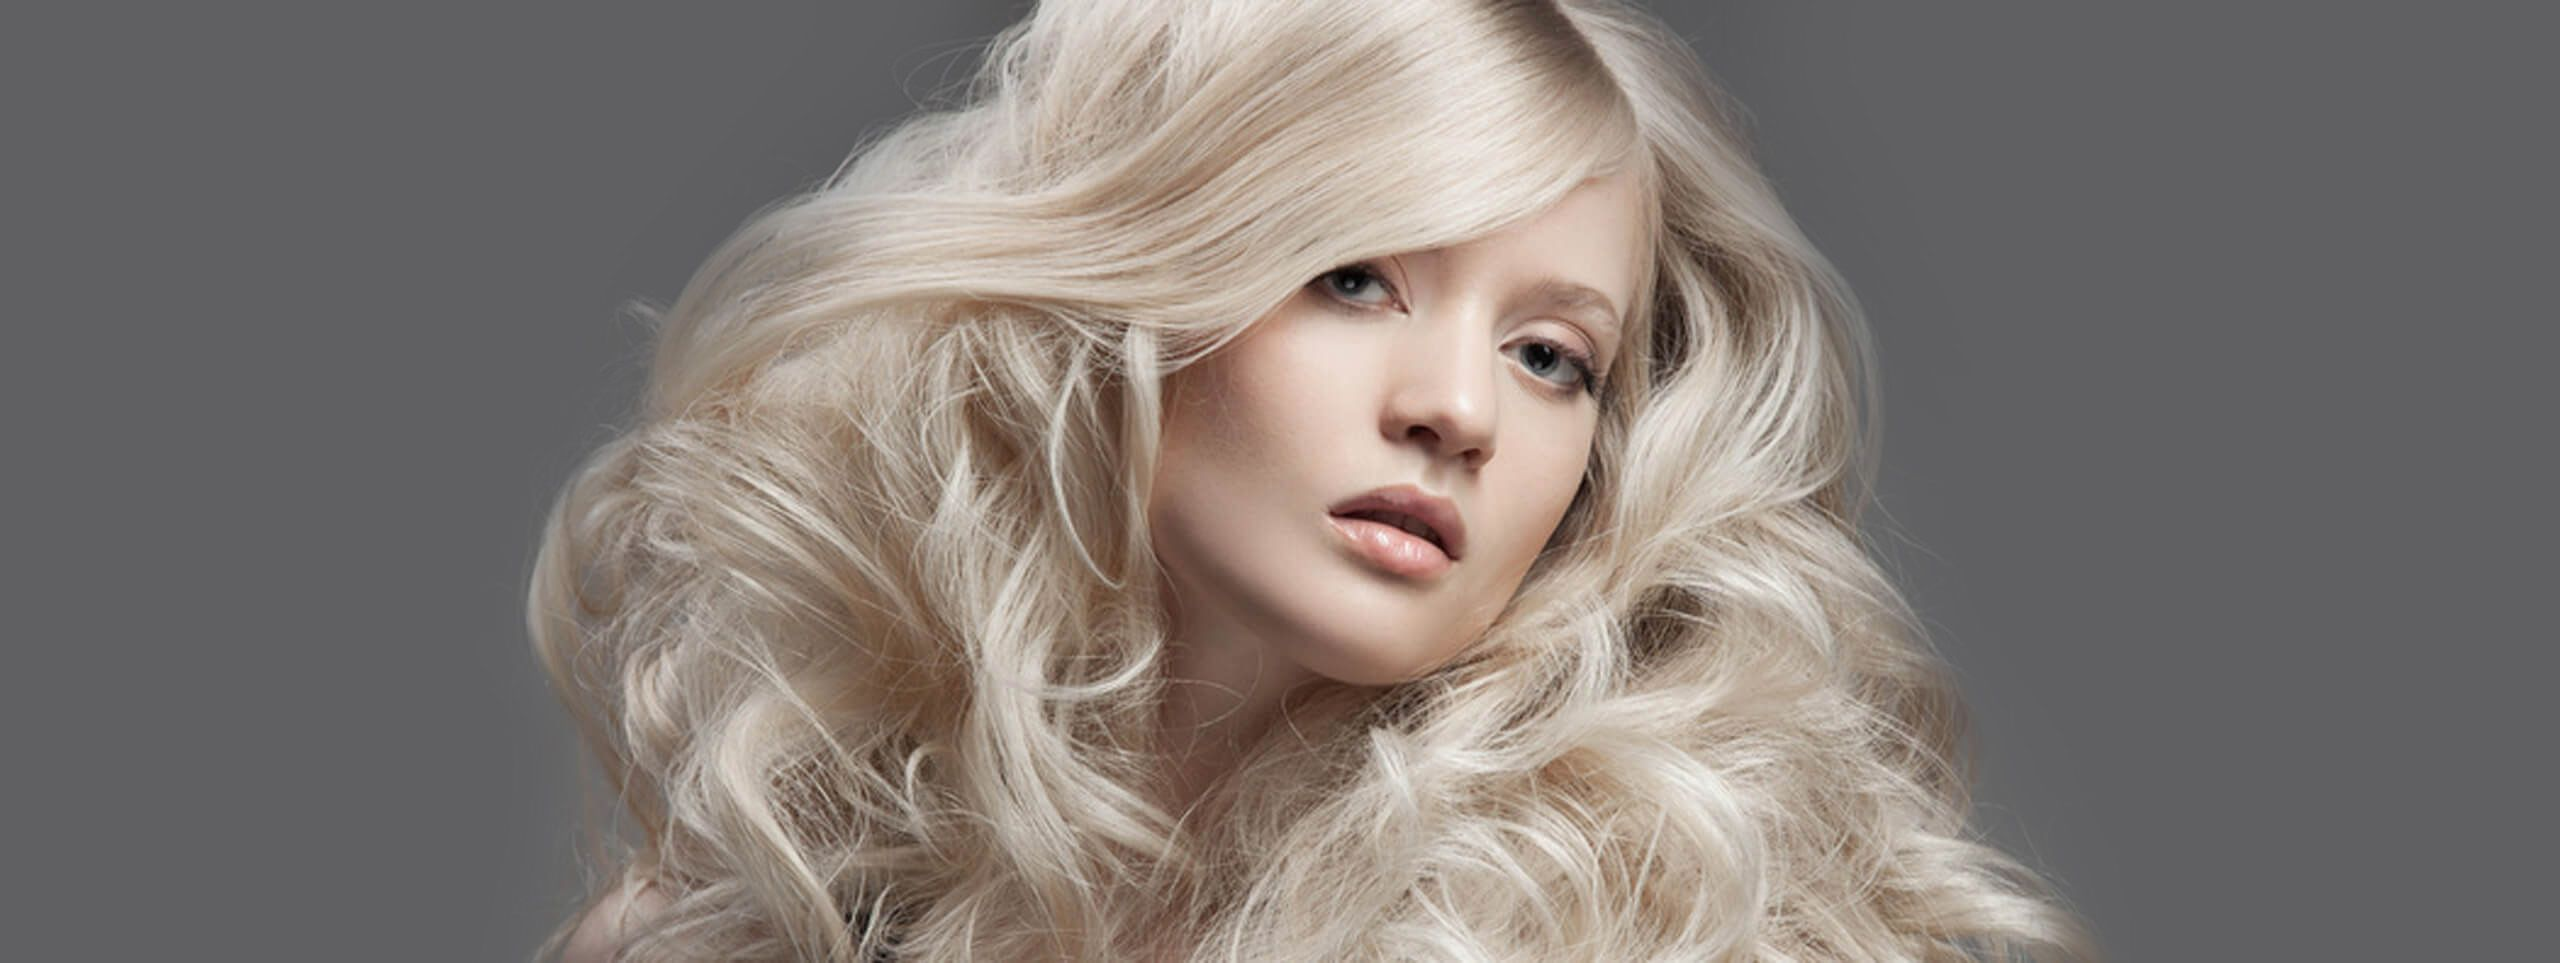 Blonde model rocks big curly hairstyle